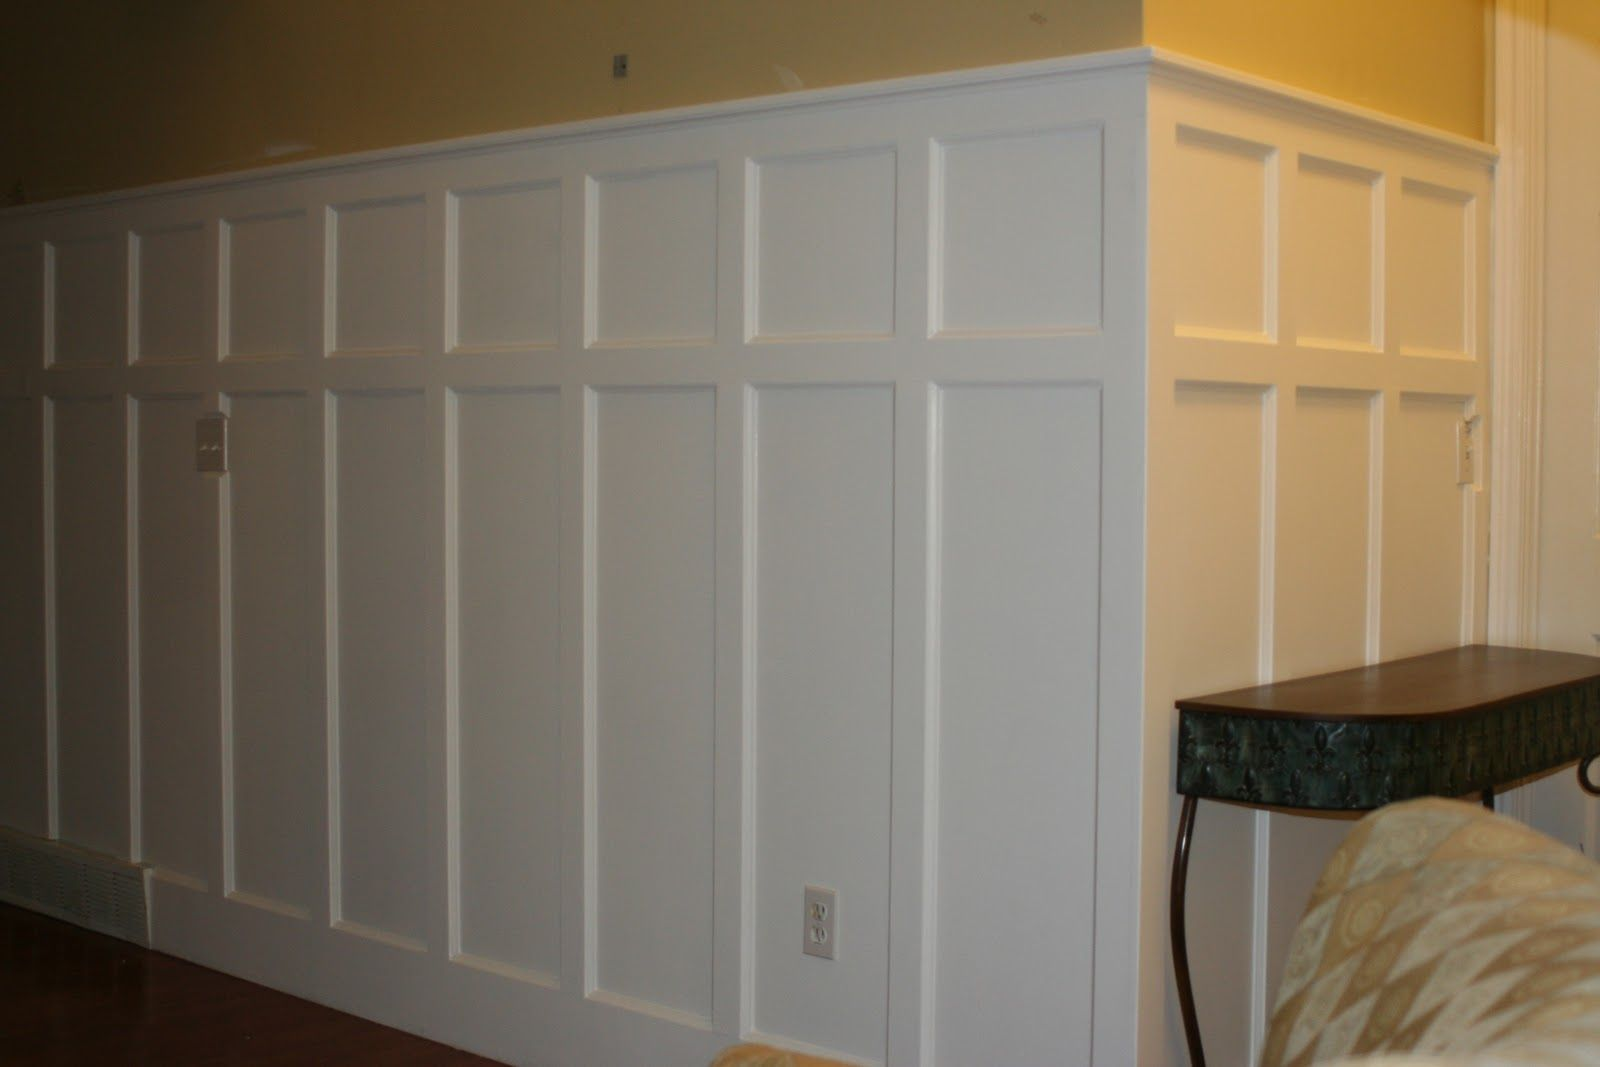 office wainscoting ideas. diy panel installing wainscoting correctly office ideas